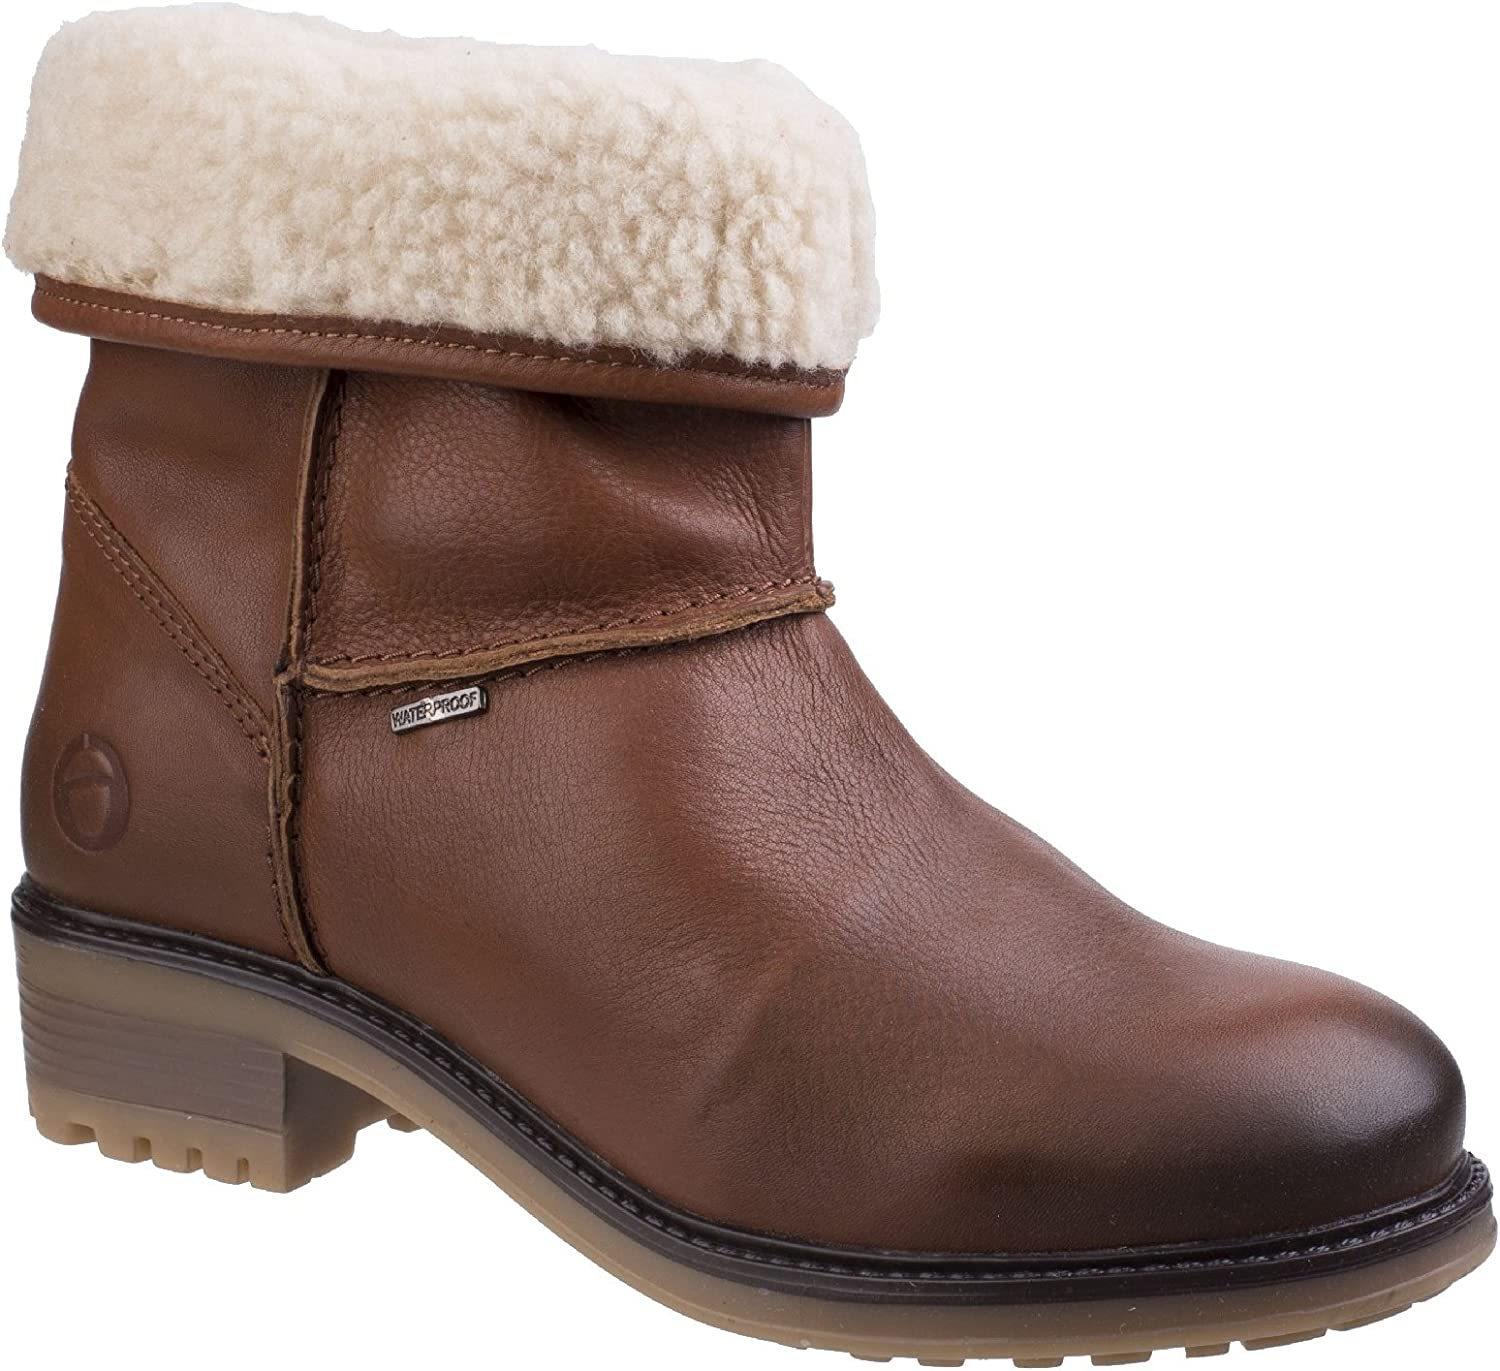 Cotswold Womens Bampton Waterproof Boot Tan Size UK 8 EU 41